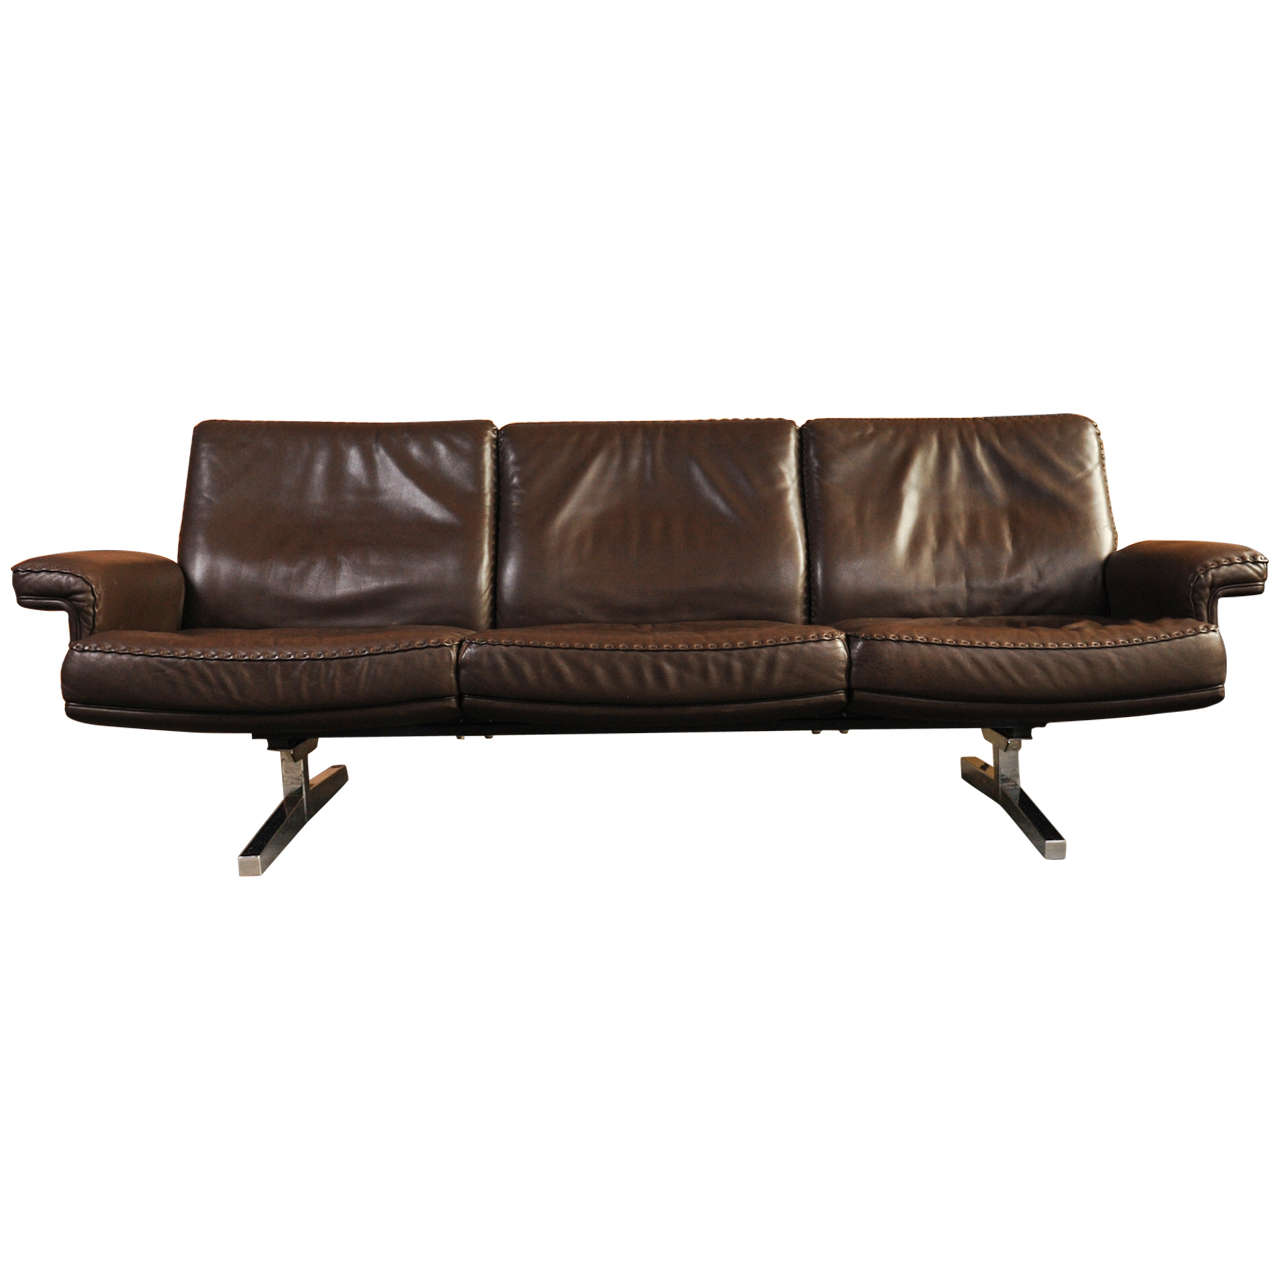 de sede 3 seat sofa at 1stdibs. Black Bedroom Furniture Sets. Home Design Ideas